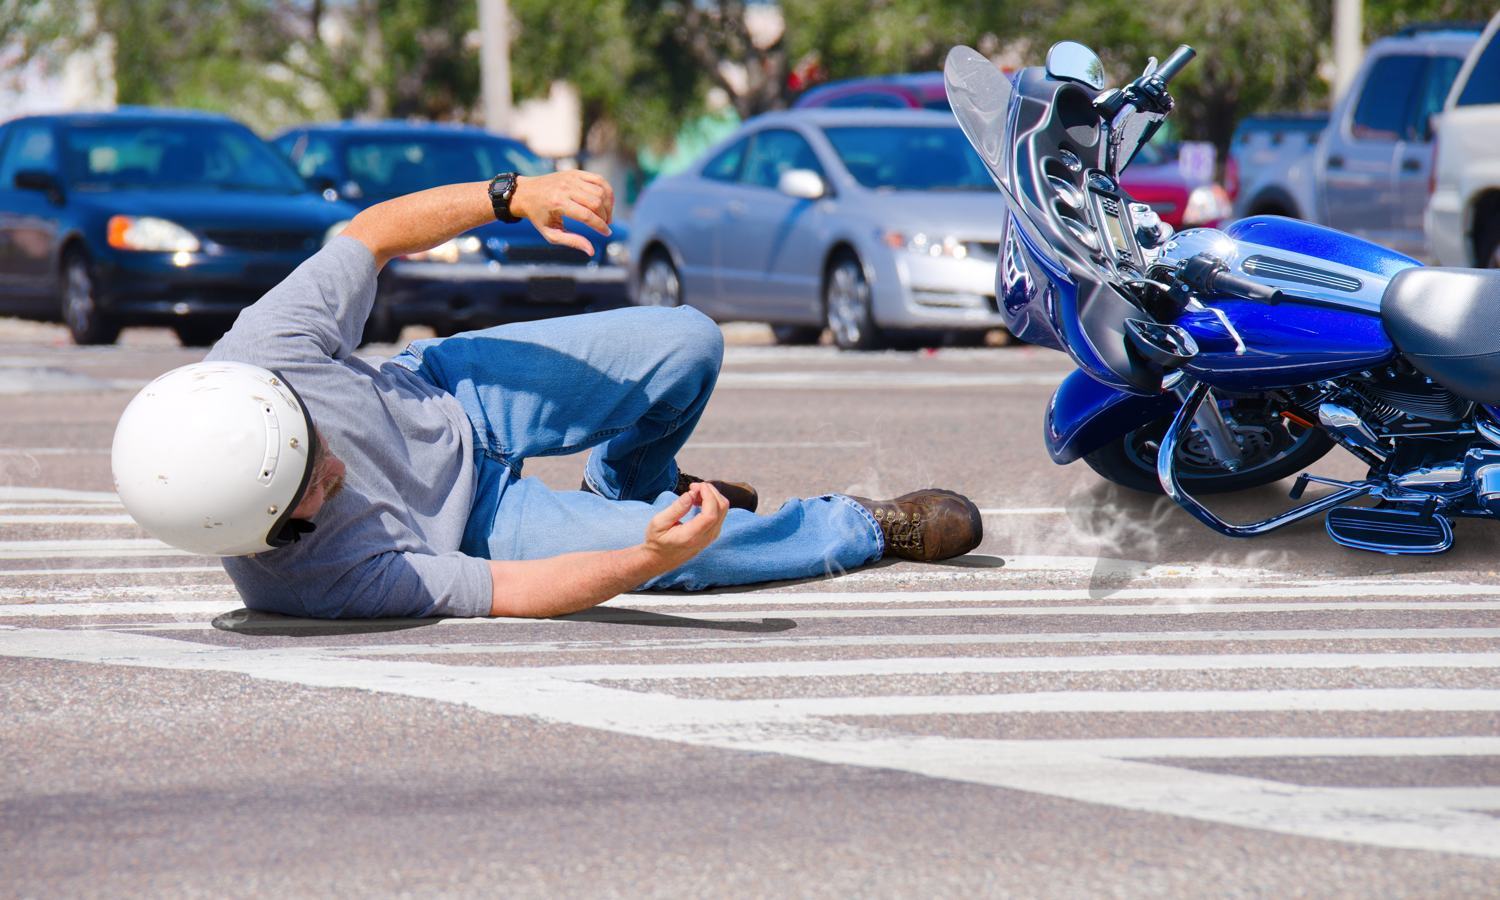 Man on the floor in a motorcycle accident with a car